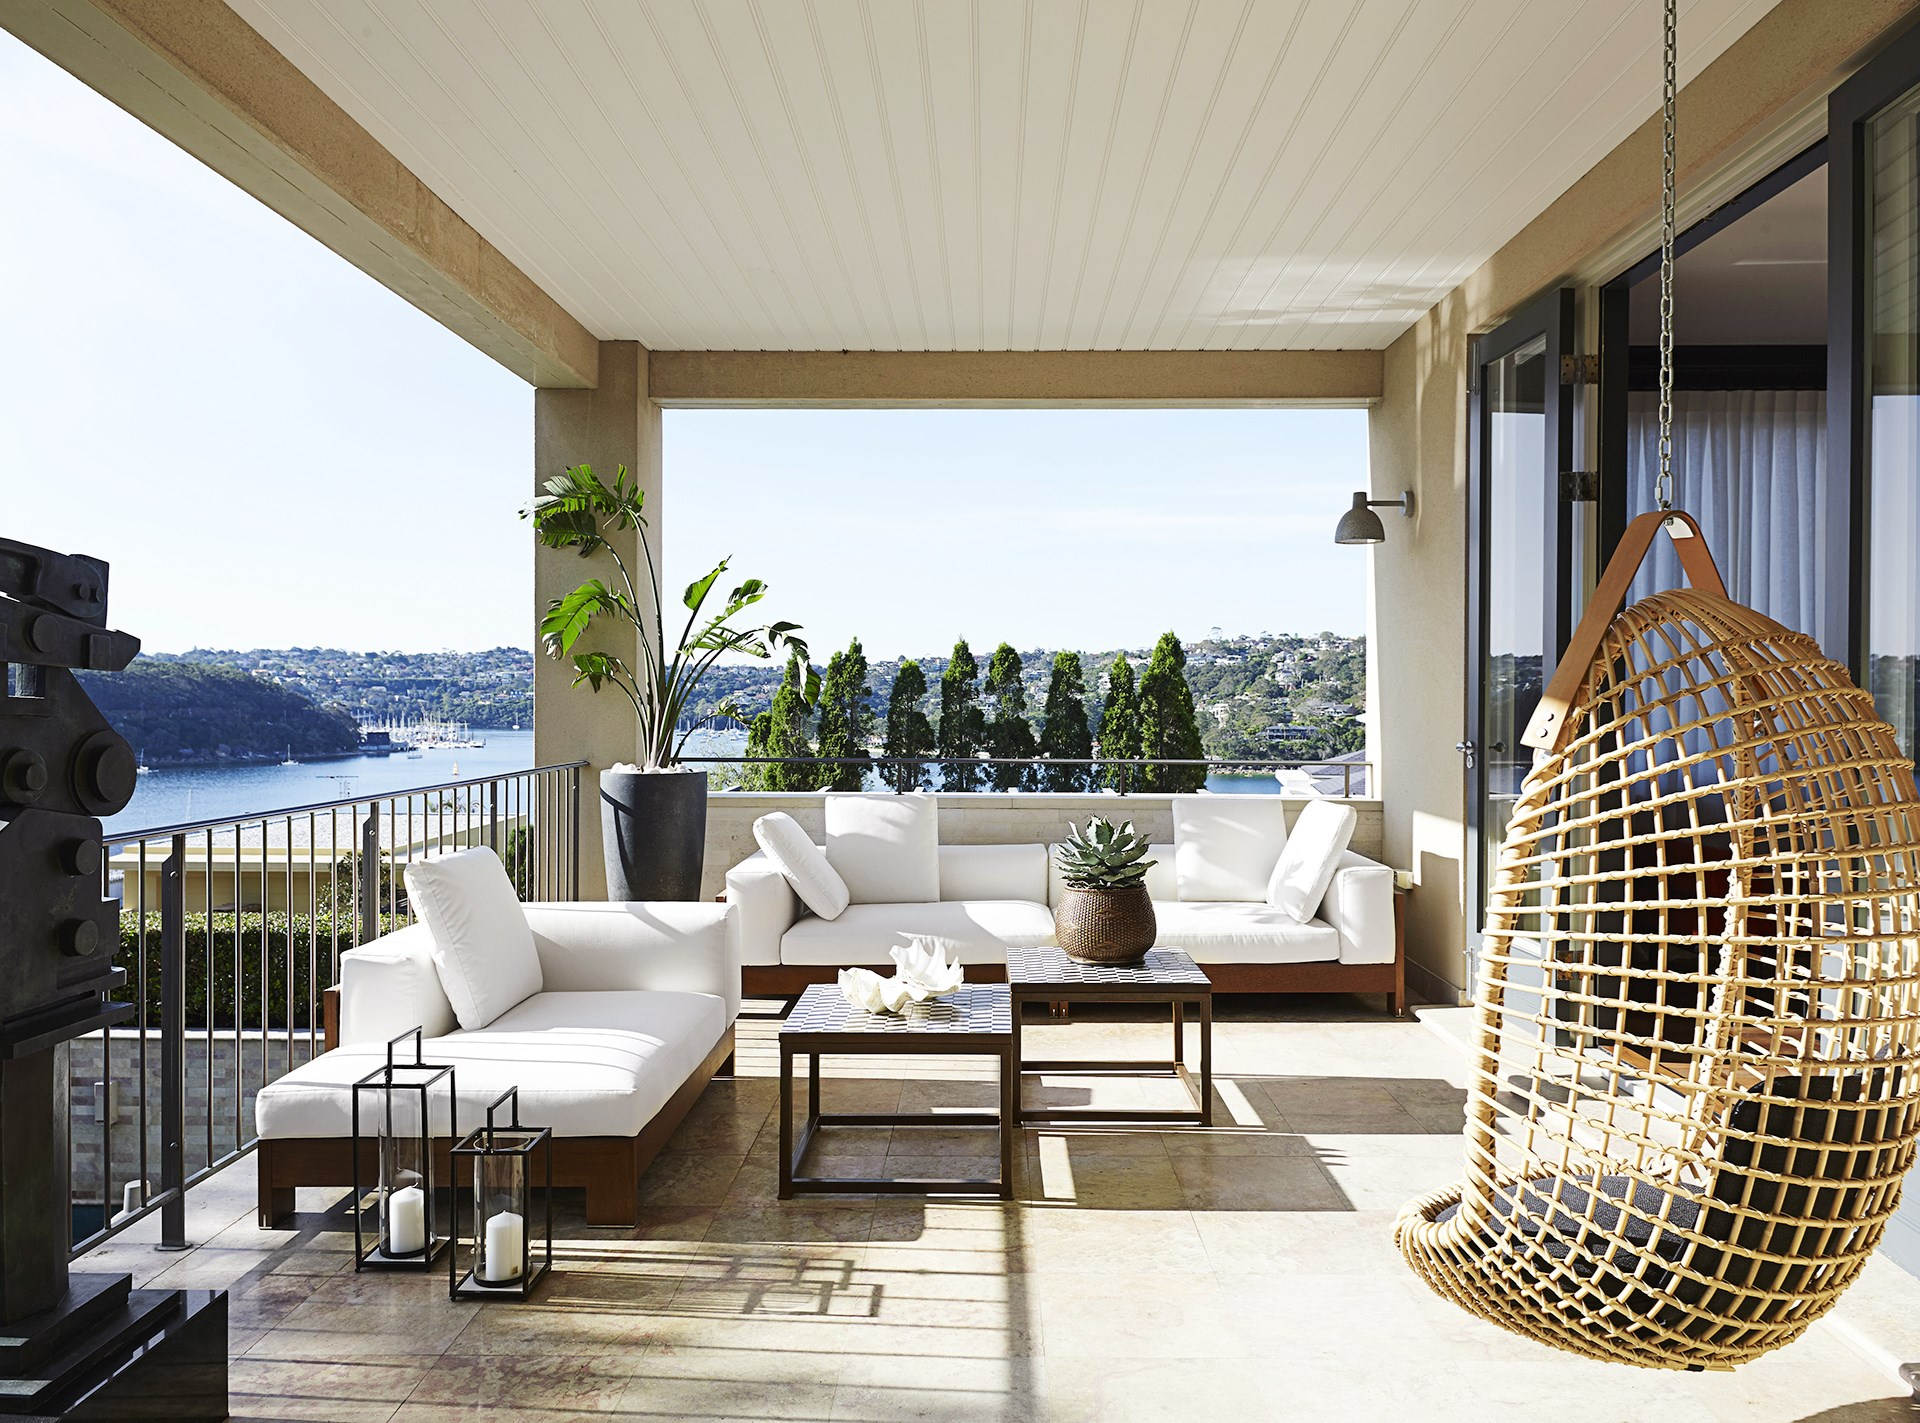 This Tuscan-style house is privy to expansive Sydney Harbour views, and the best place to enjoy them is from this chic balcony off the formal living room. *Photo:* Anson Smart.